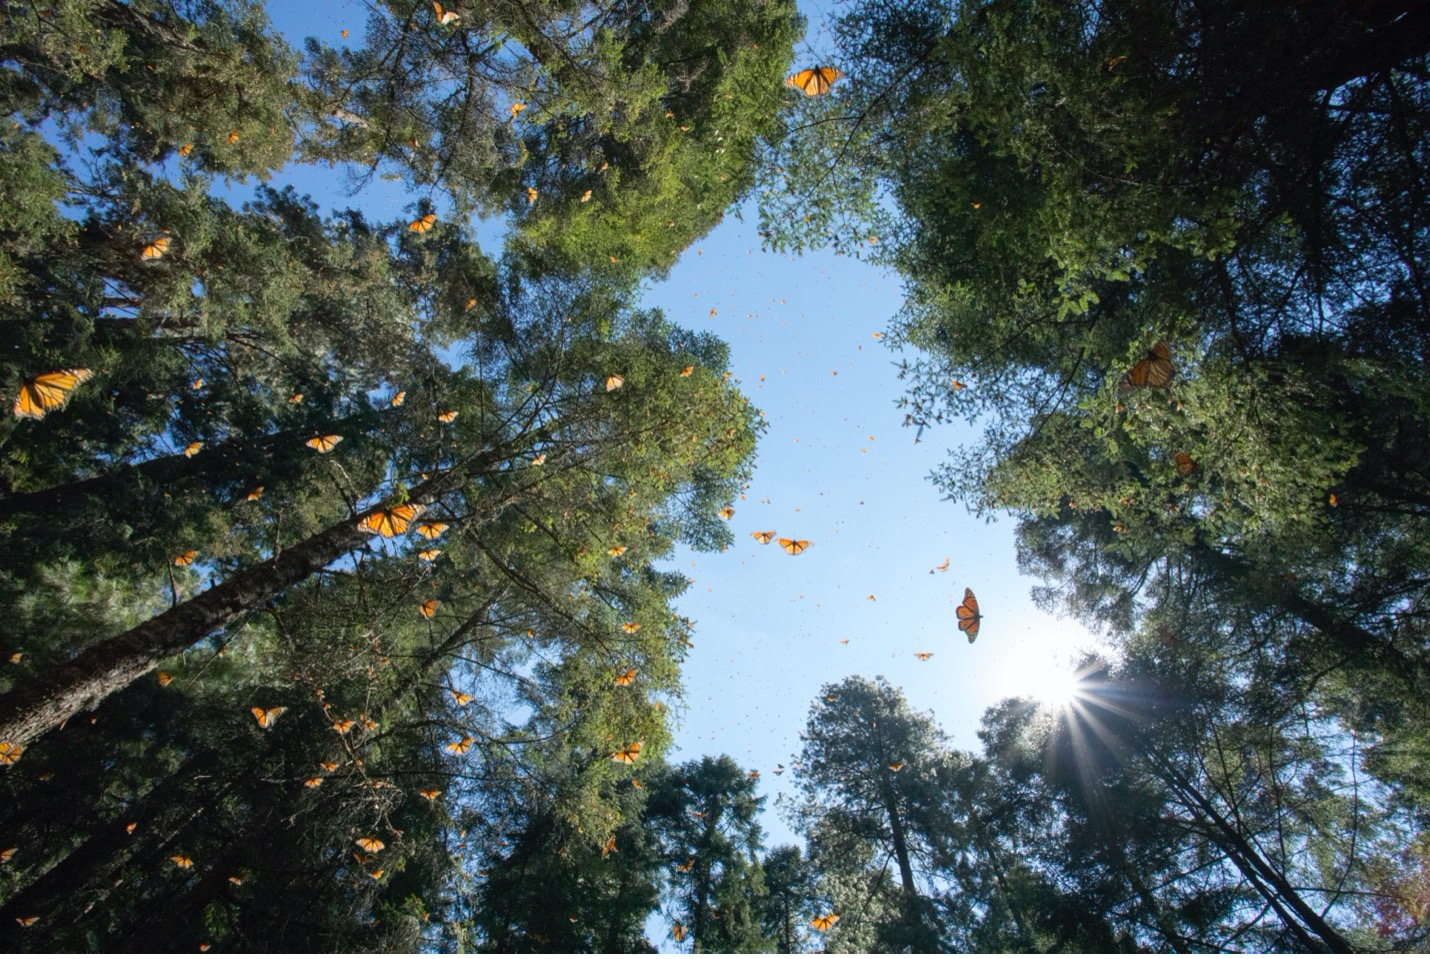 monarch butterflies soar through the air in great numbers